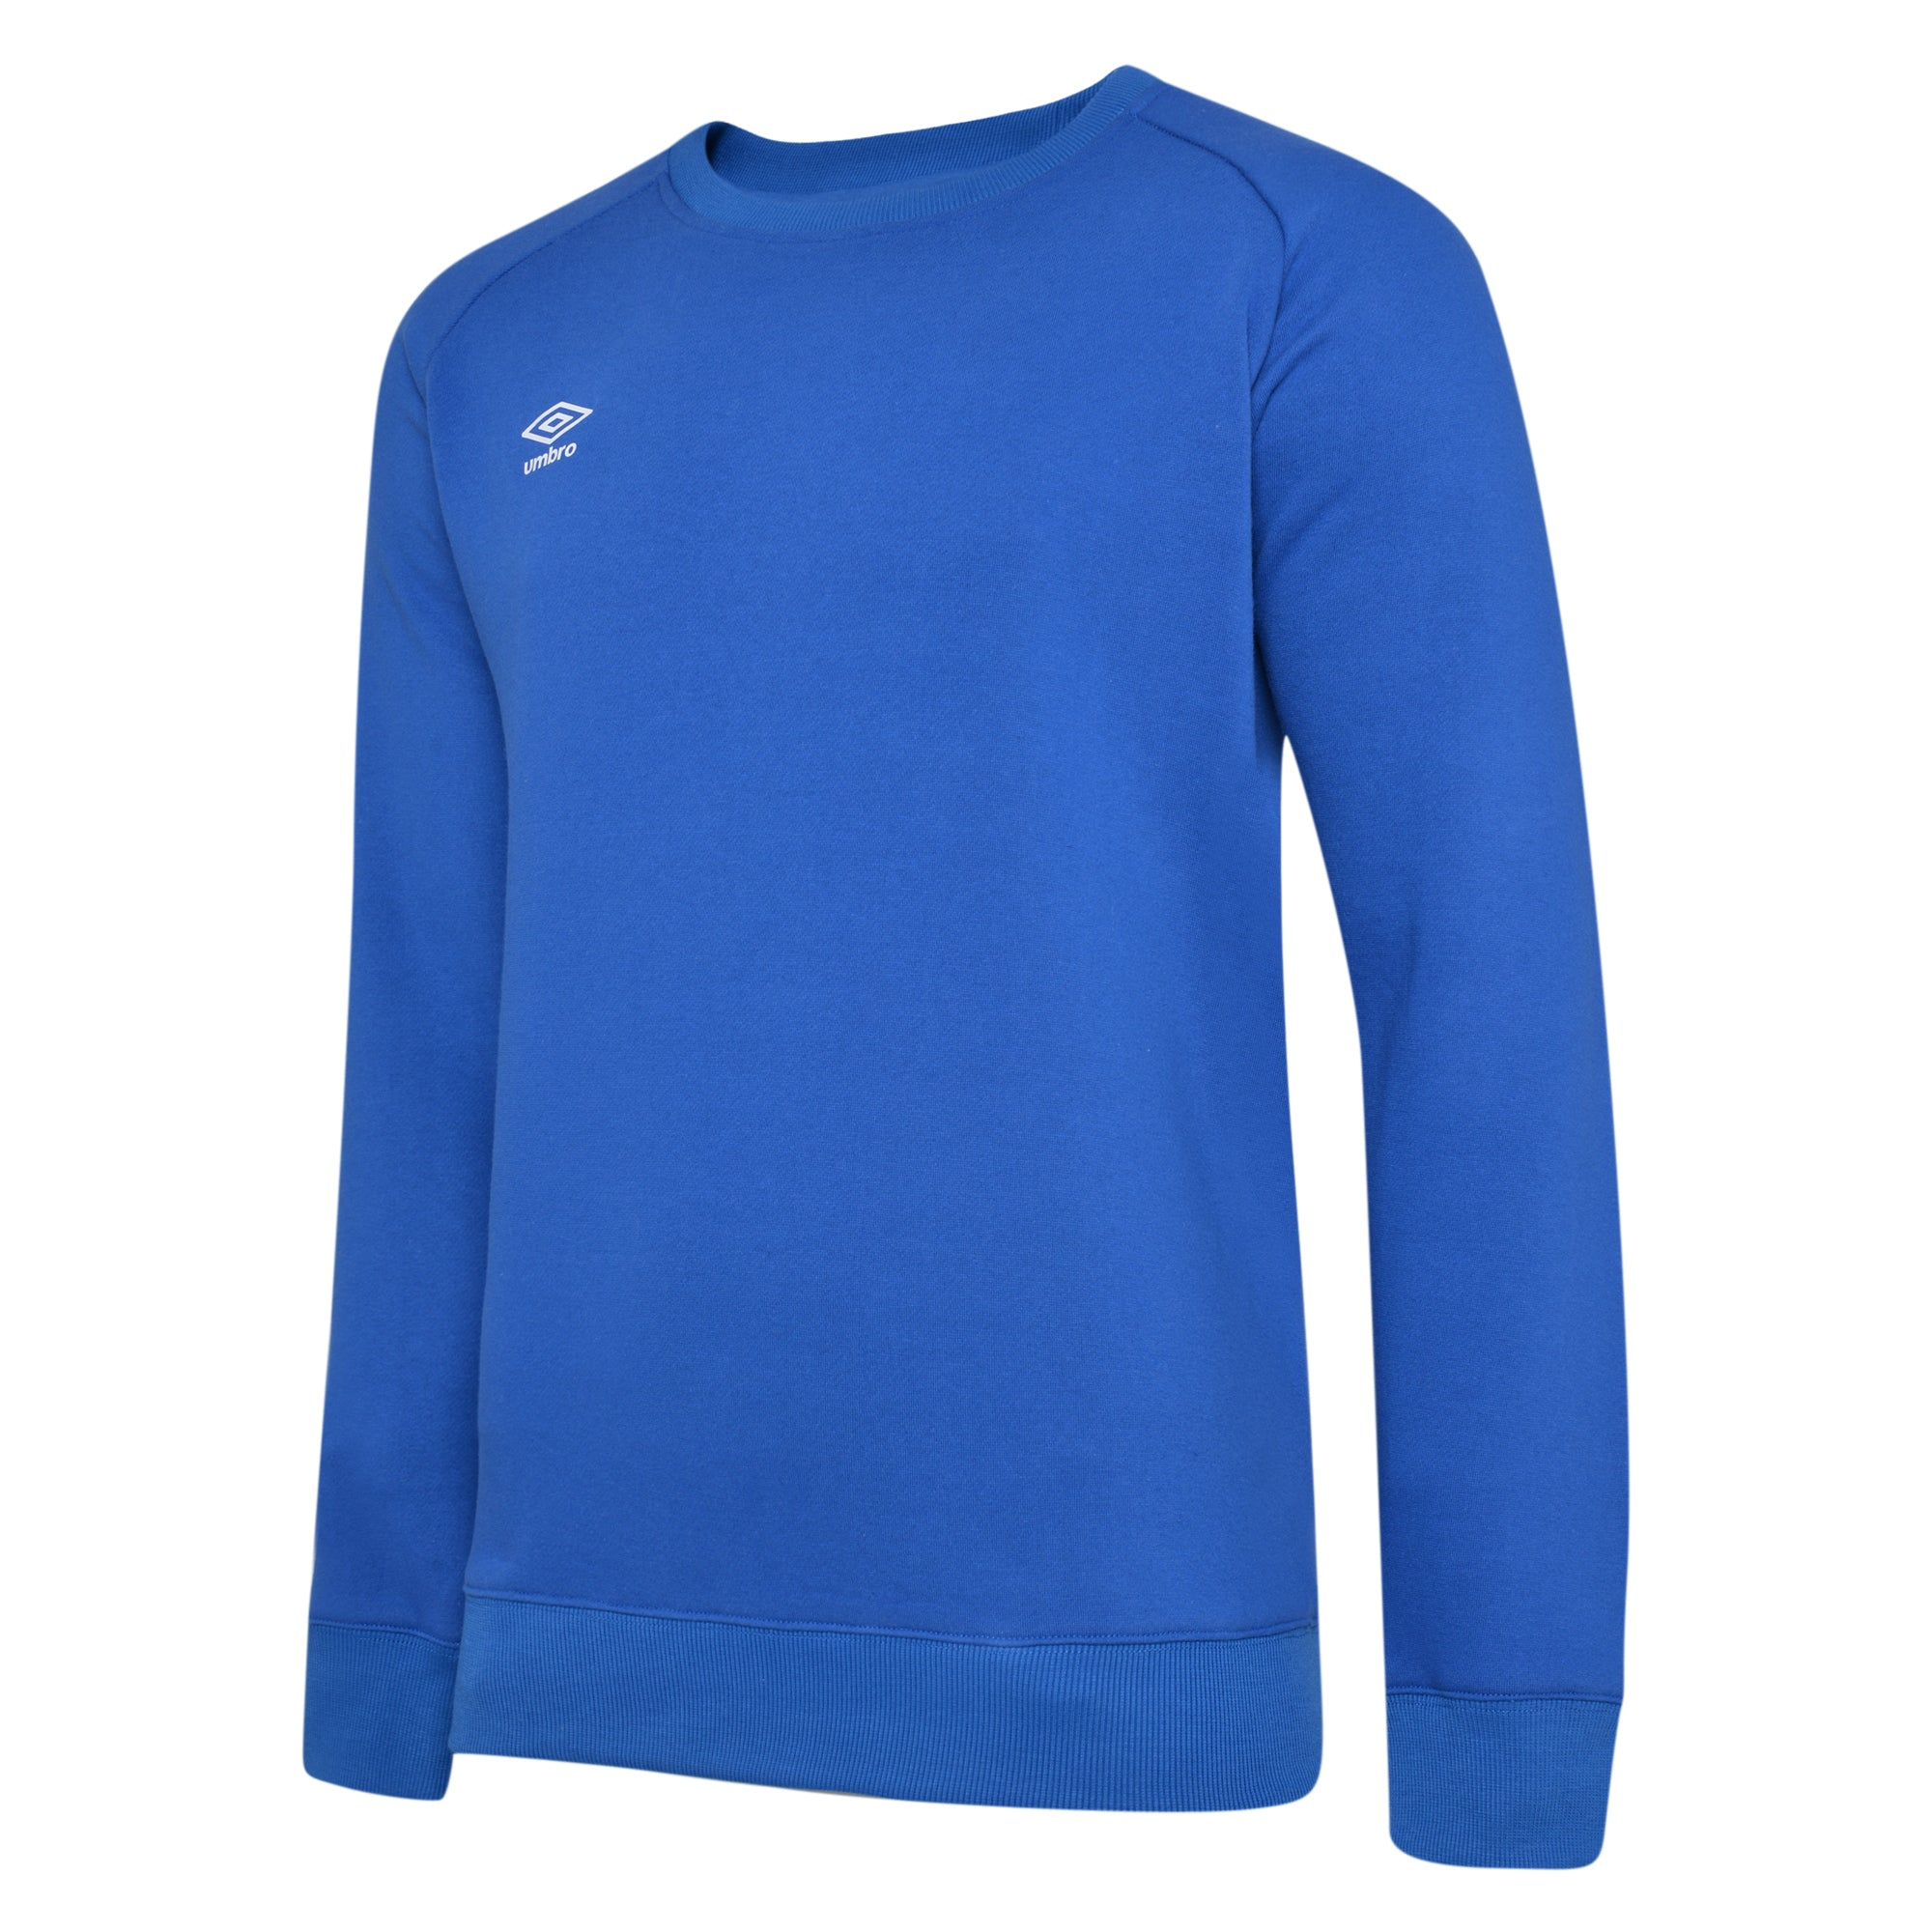 Umbro Club Leisure Sweat - TW Royal/White